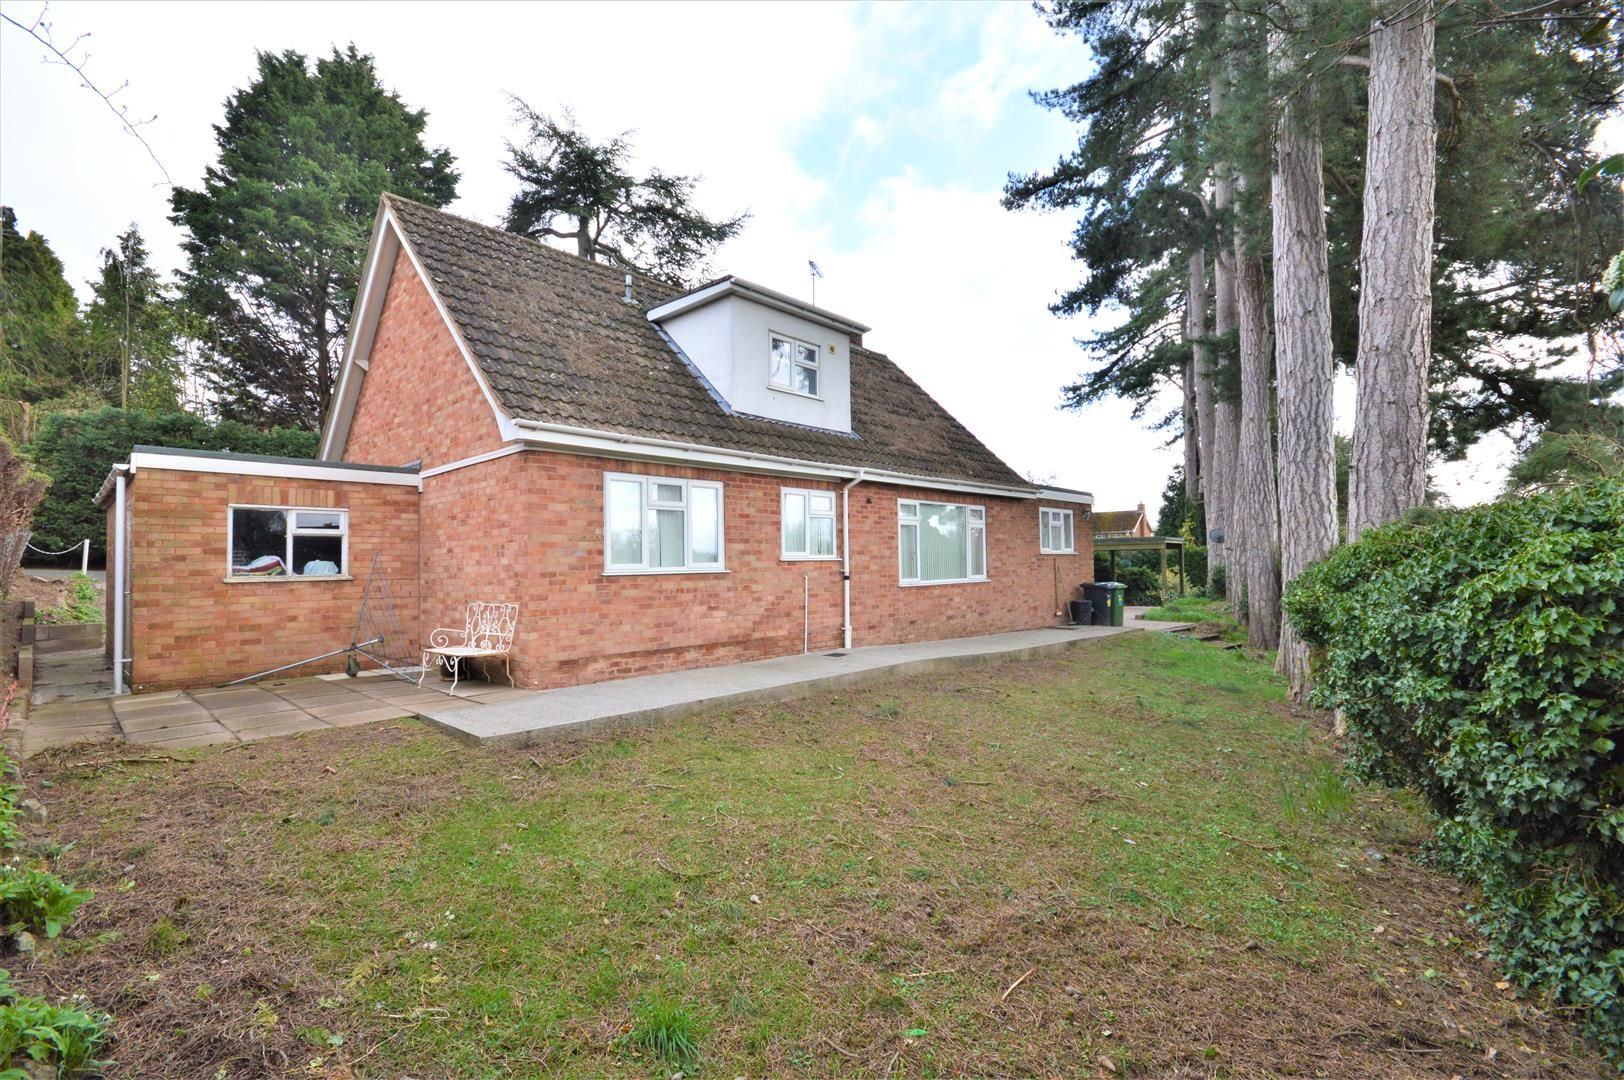 4 bed detached for sale 13